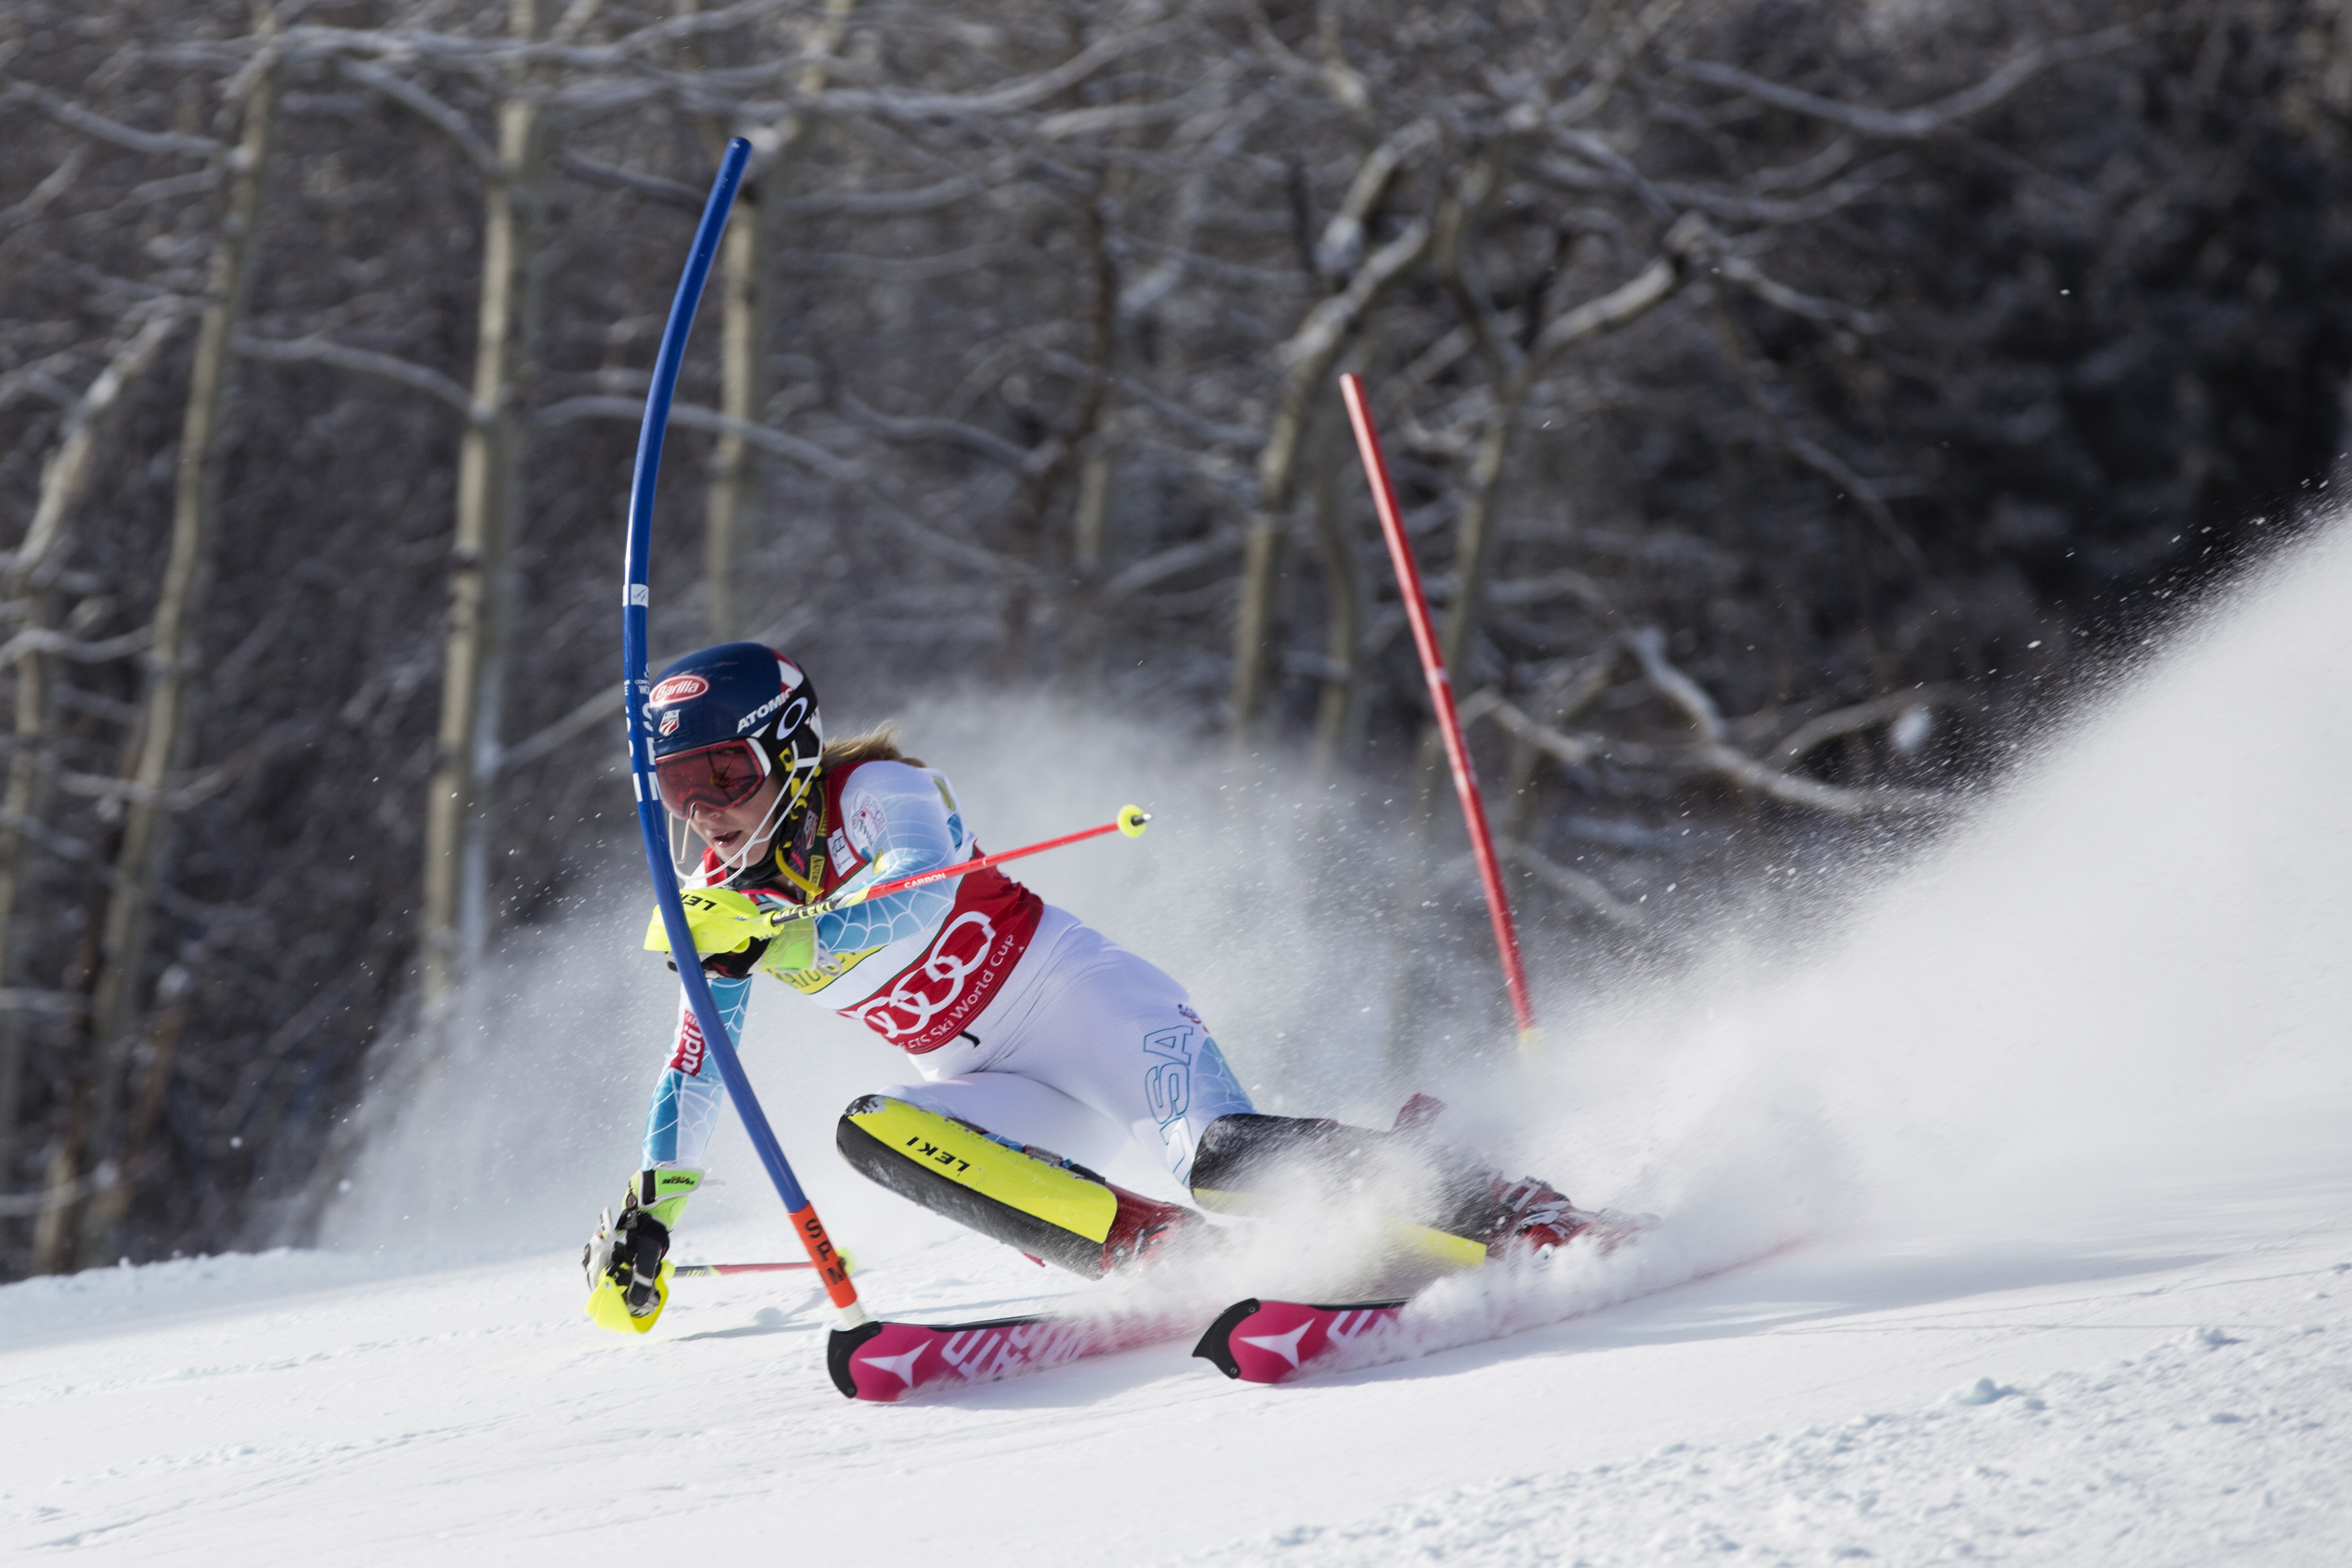 Mikaela Shiffrin could pull off a rare double-win in both GS and Slalom races. PHOTO: Courtesy of US Ski Team